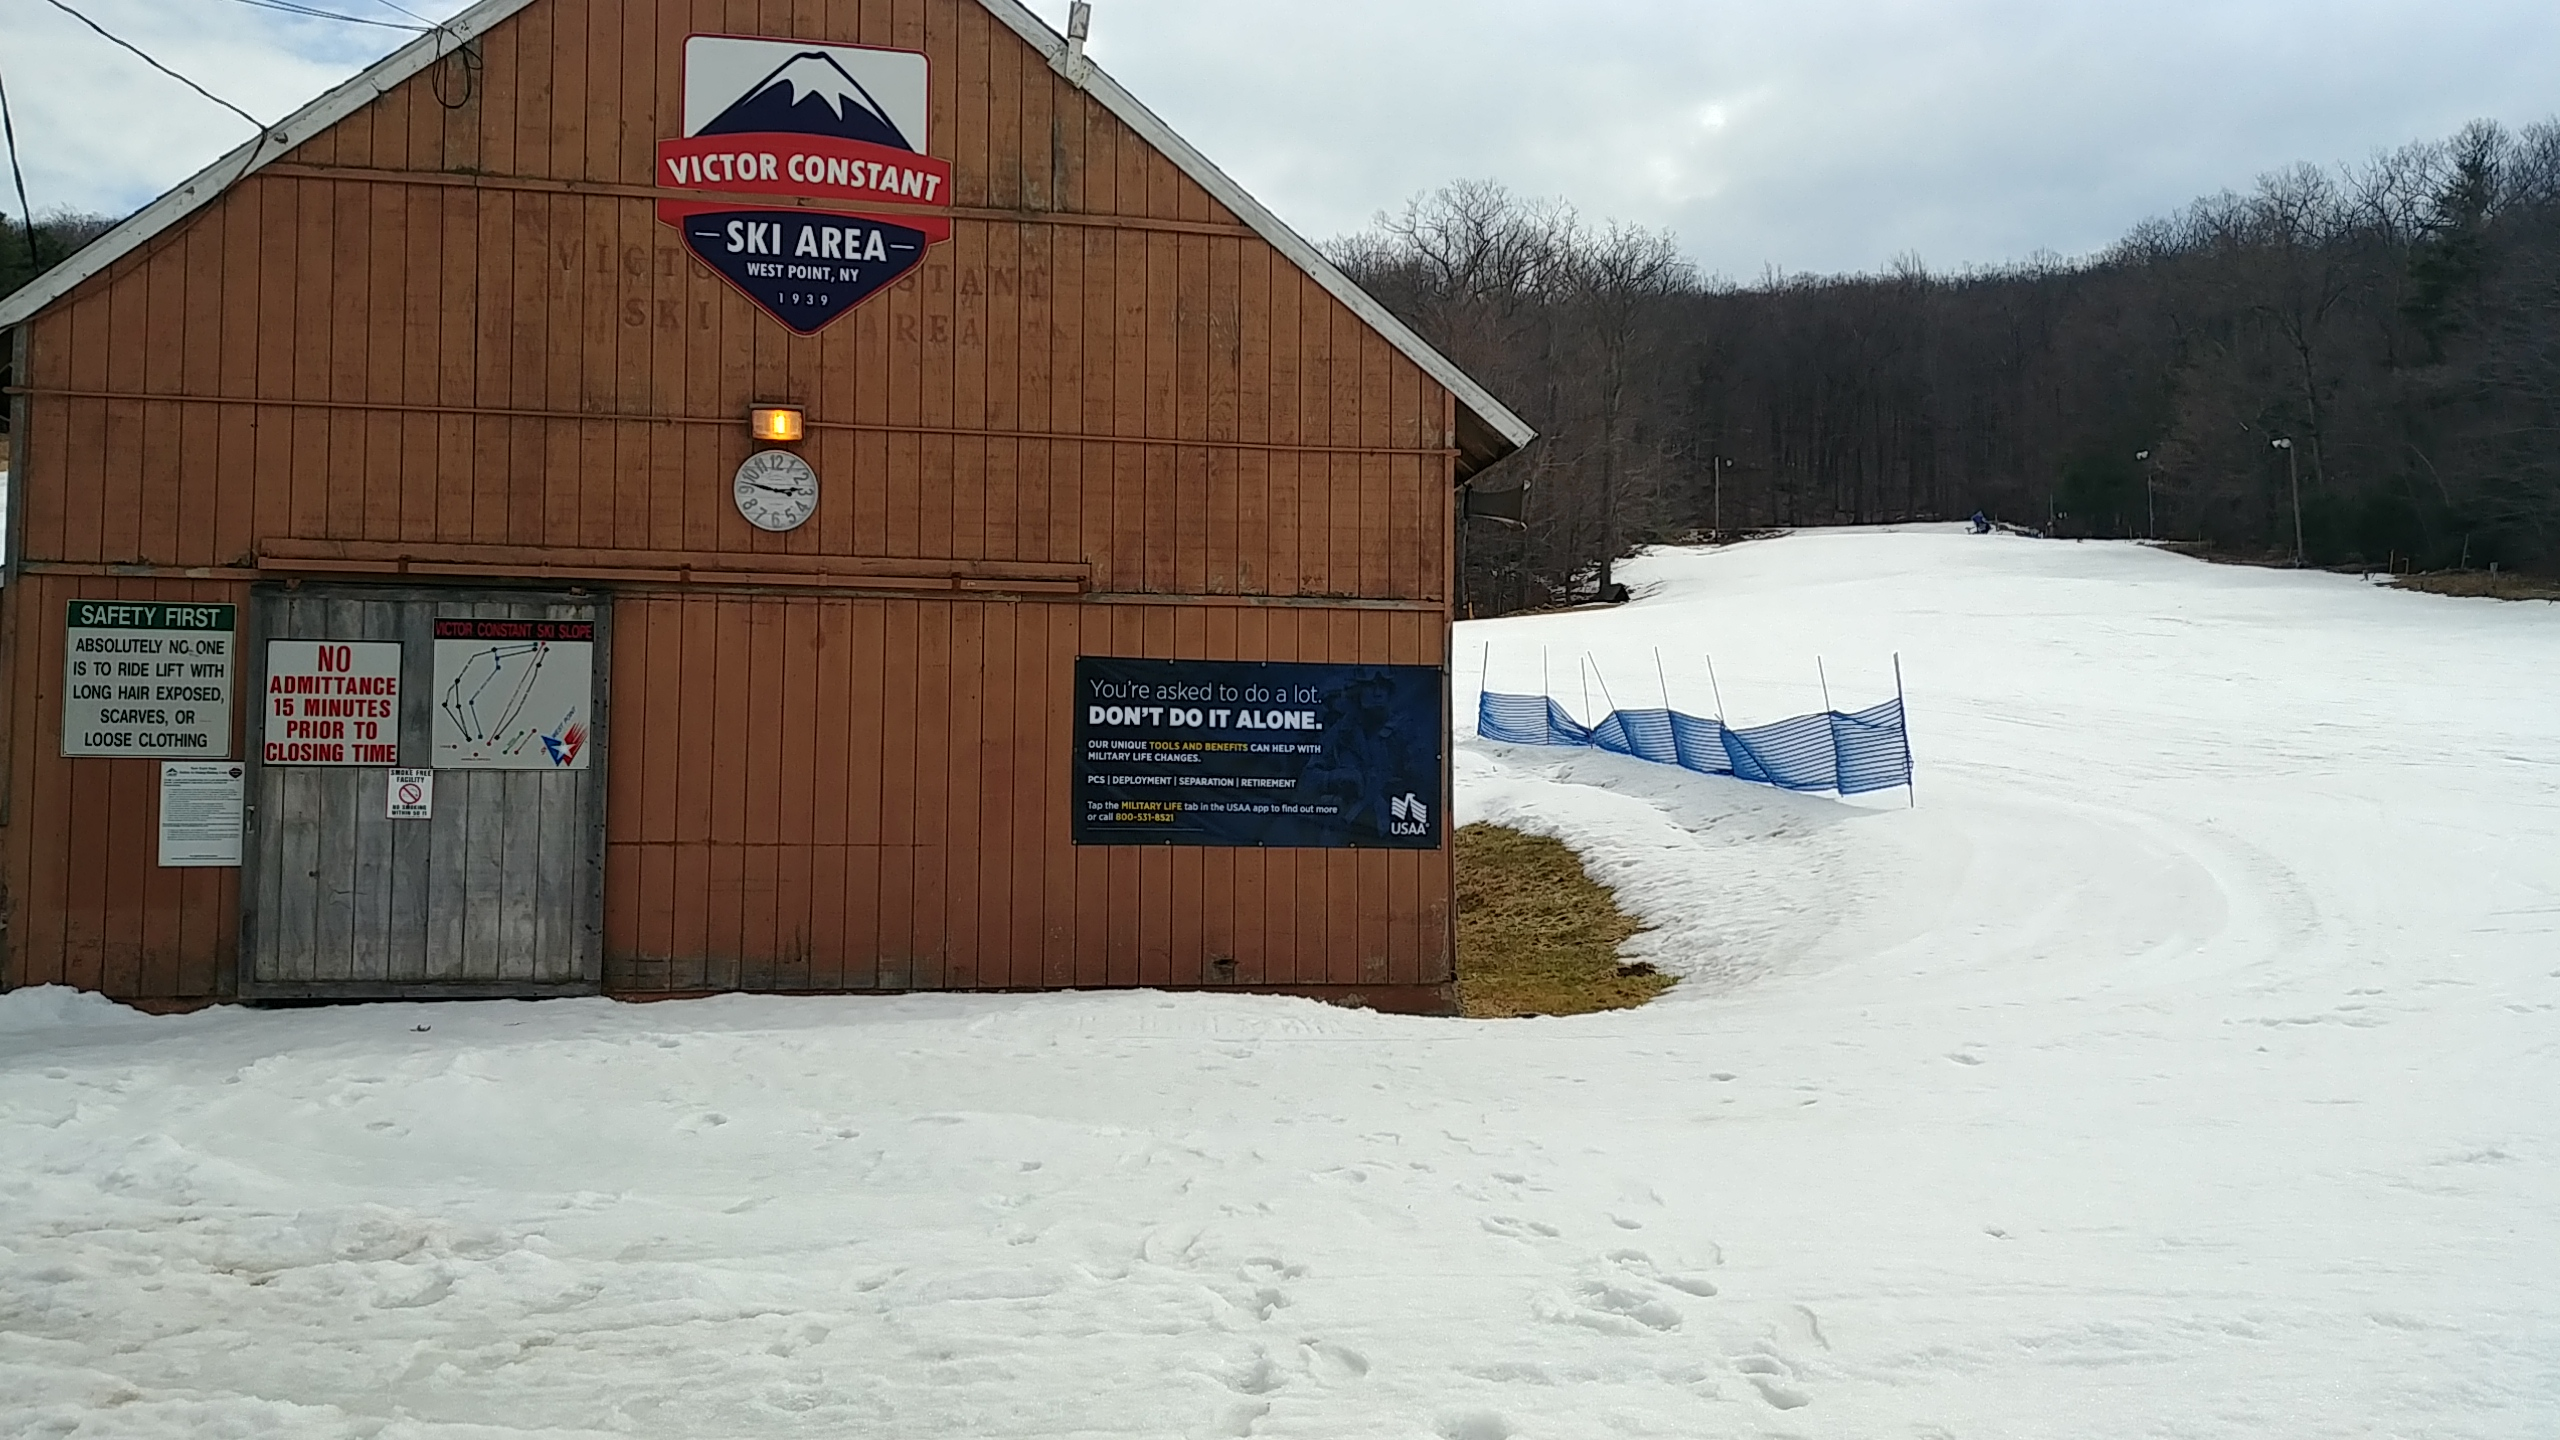 Victor Constant Ski Area - Banner Advertising - Chair Lift House